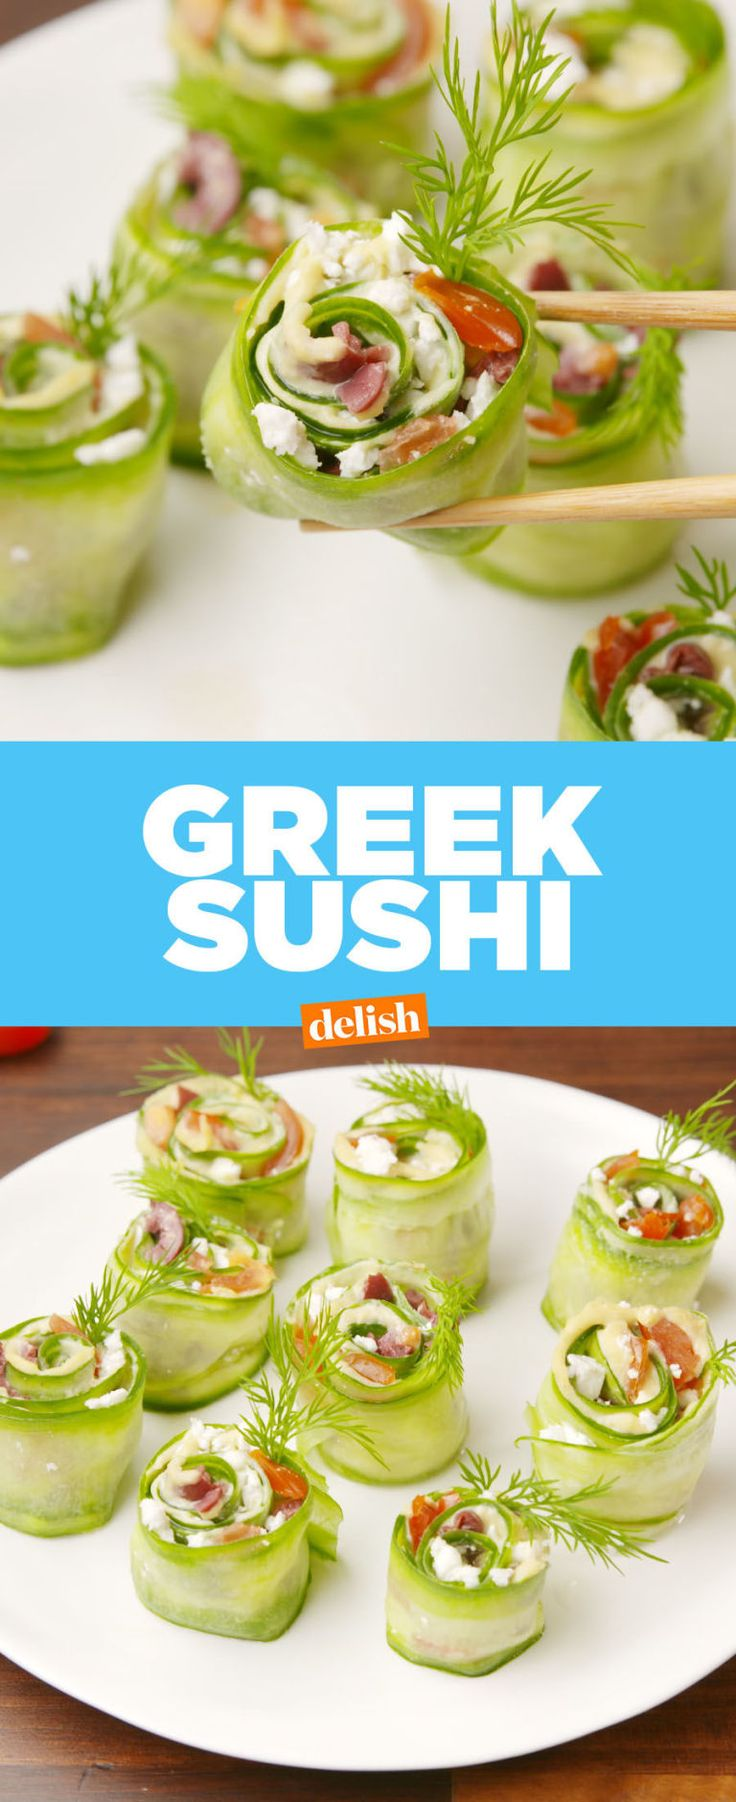 Greek Sushi Is The Healthy Snack Your Body Needs